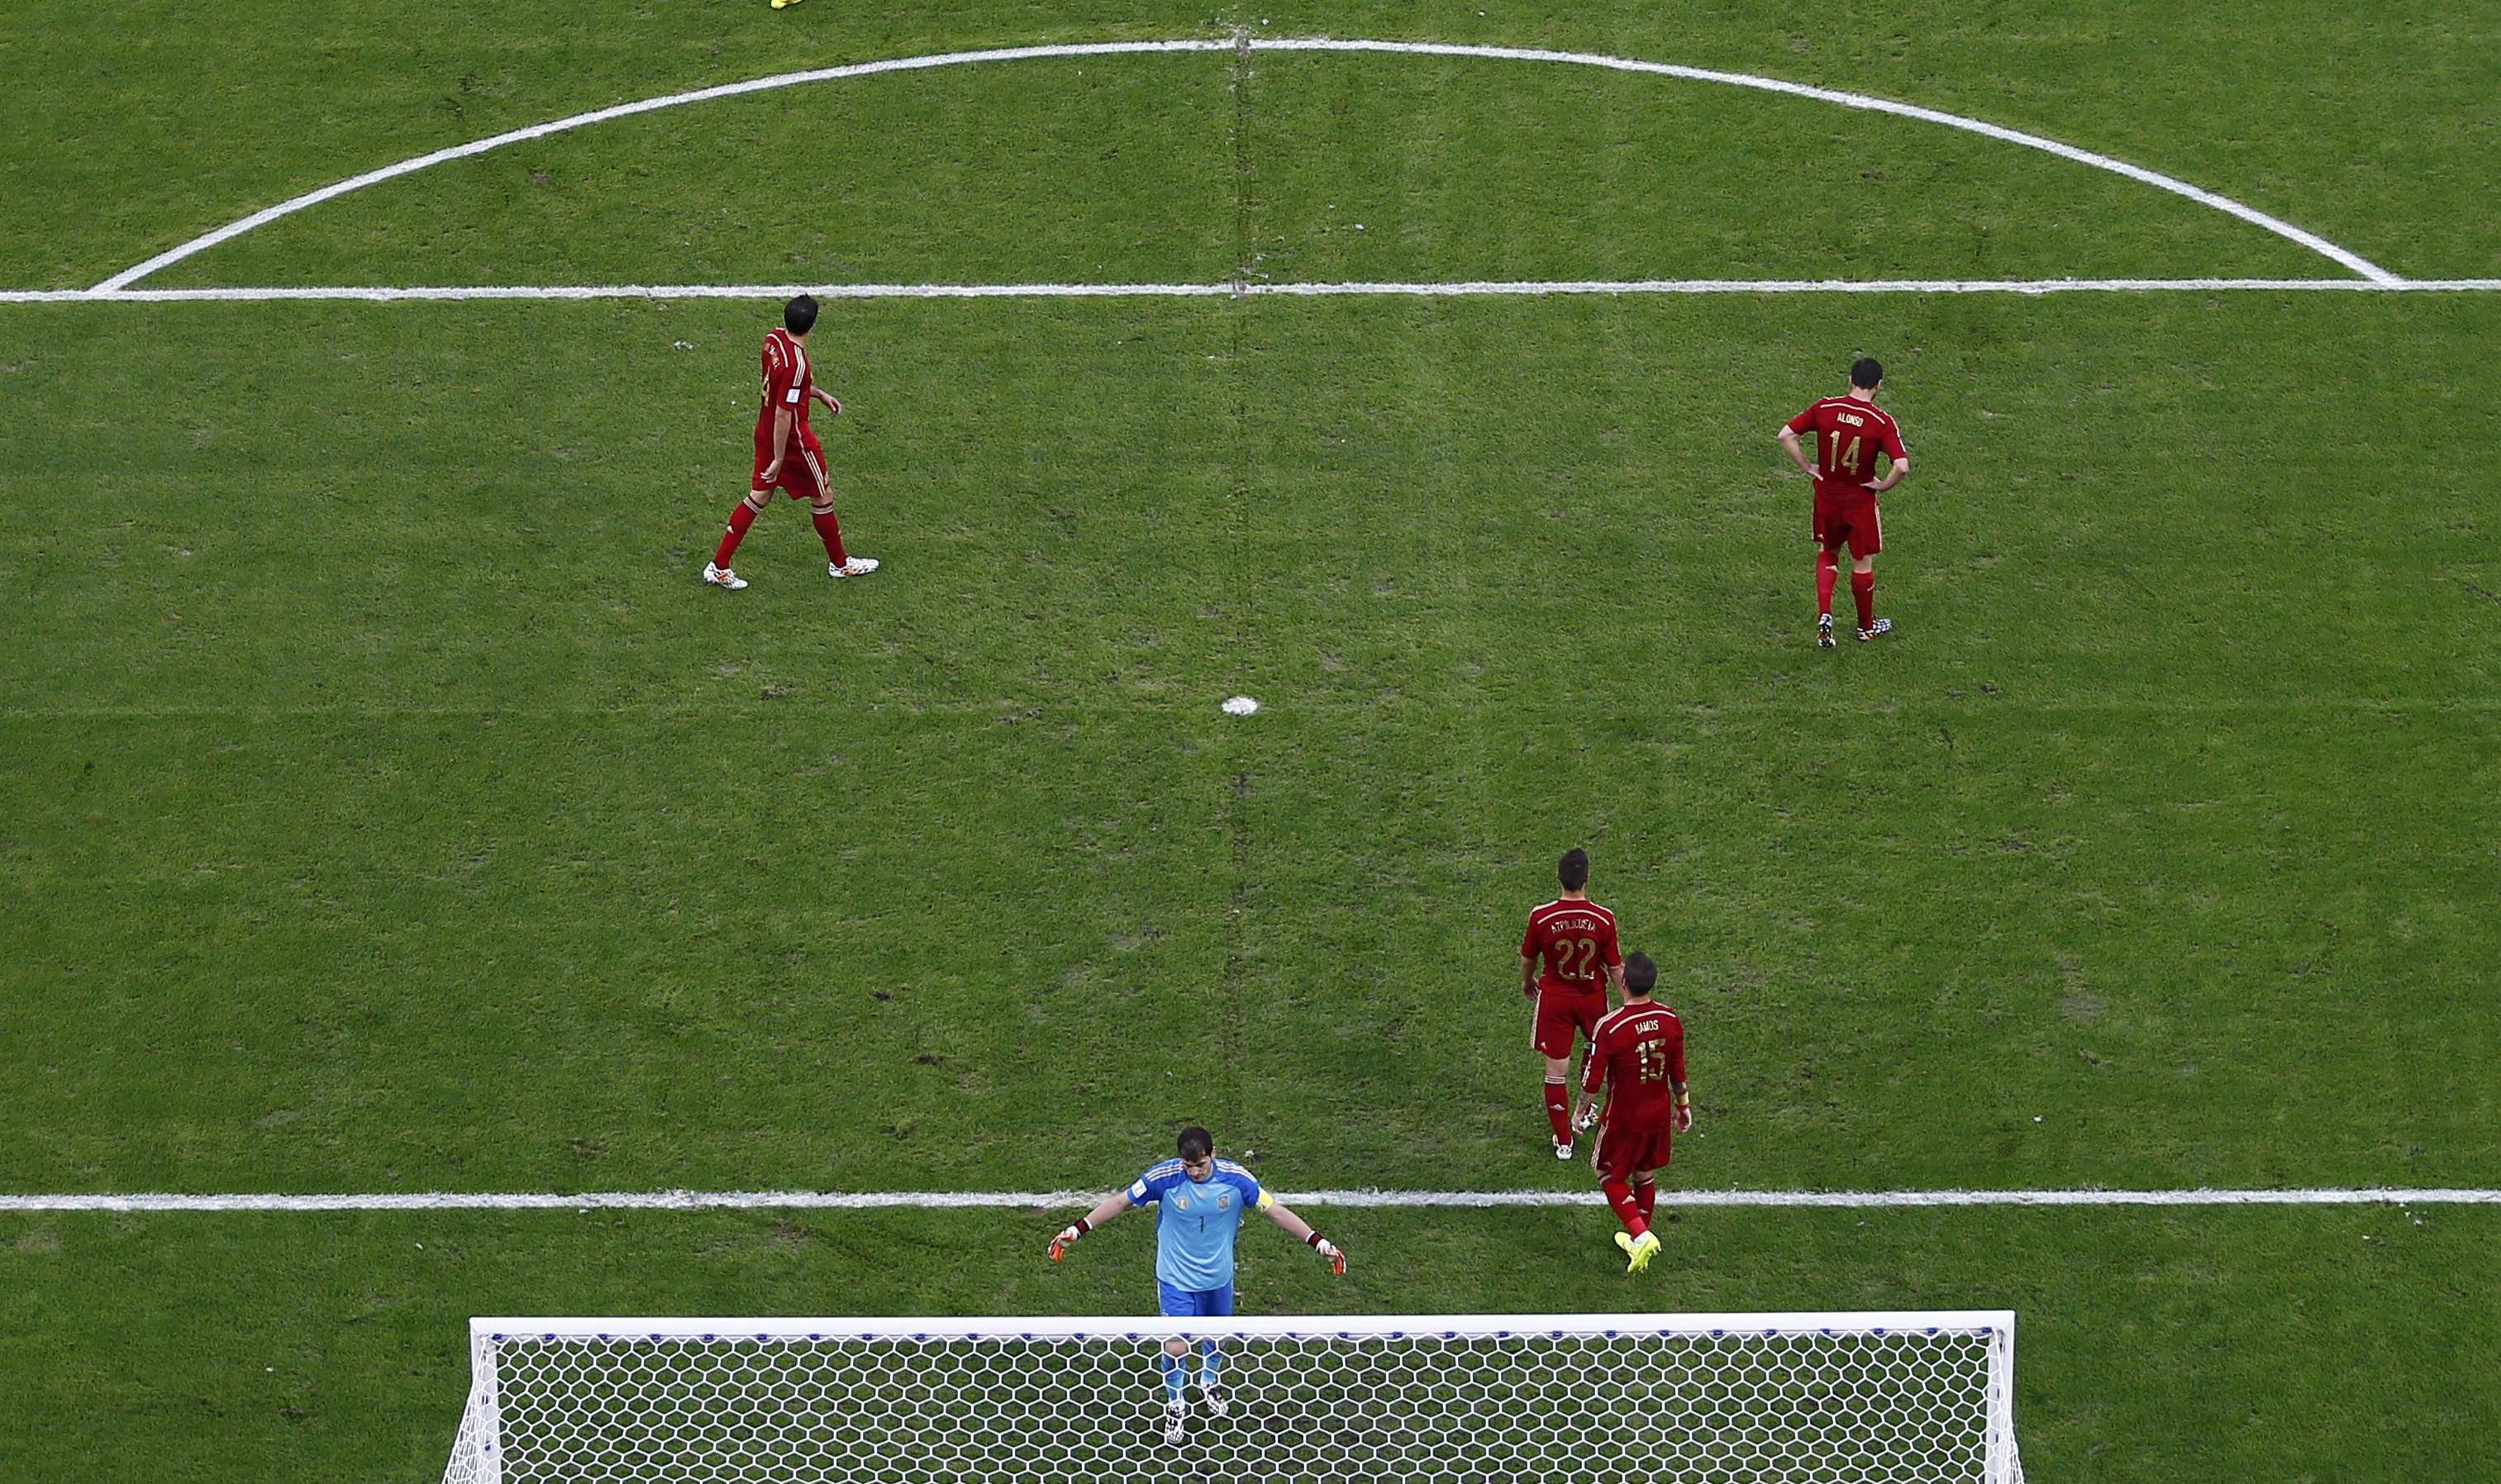 Spain players react after a goal by Chile's Eduardo Vargas during the 2014 World Cup Group B soccer match at the Maracana stadium in Rio de Janeiro on June 18, 2014.